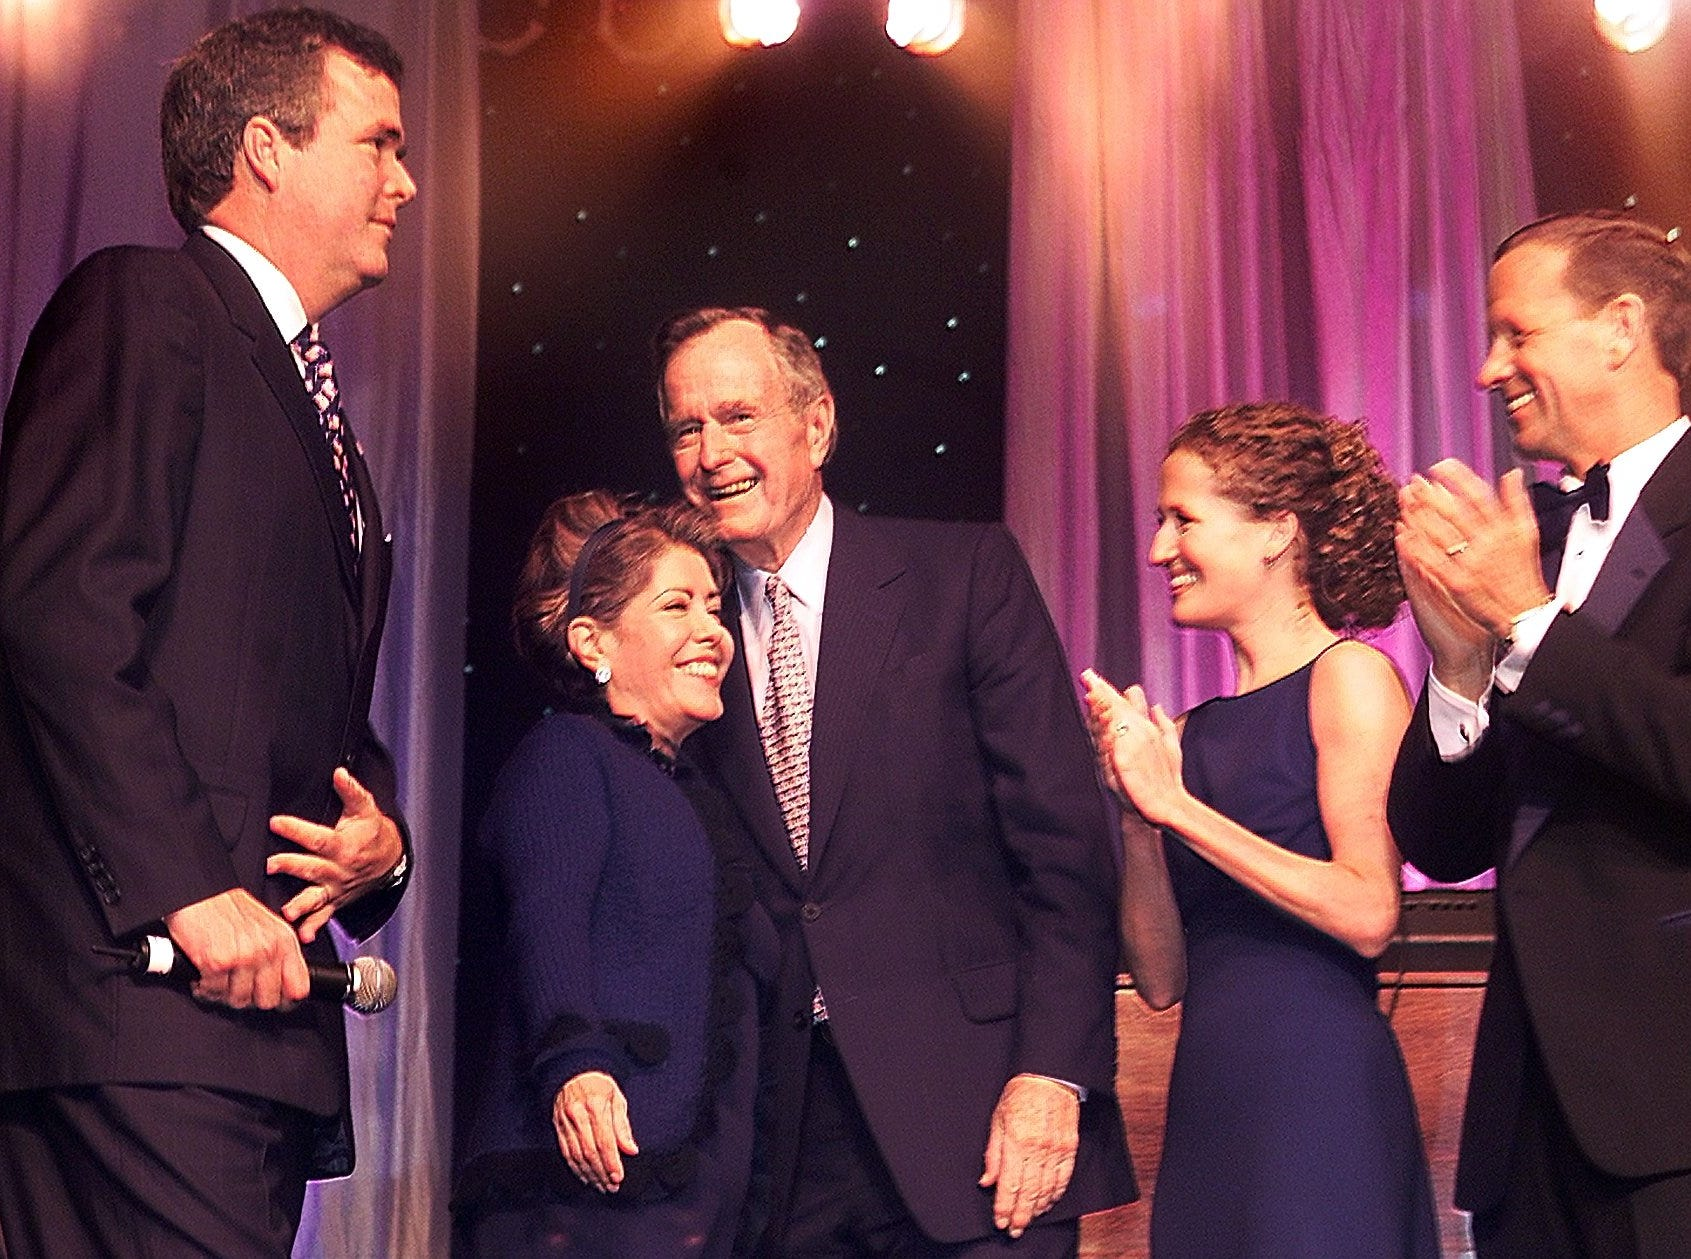 Former President George H. W. Bush (center) hugs son Jeb's wife , as they are joined by (from left) Jeb's son George P. Bush, and (right) Courtney and her new husband, Florida's lieutenant governor Frank Brogan at the Inauguration Party.